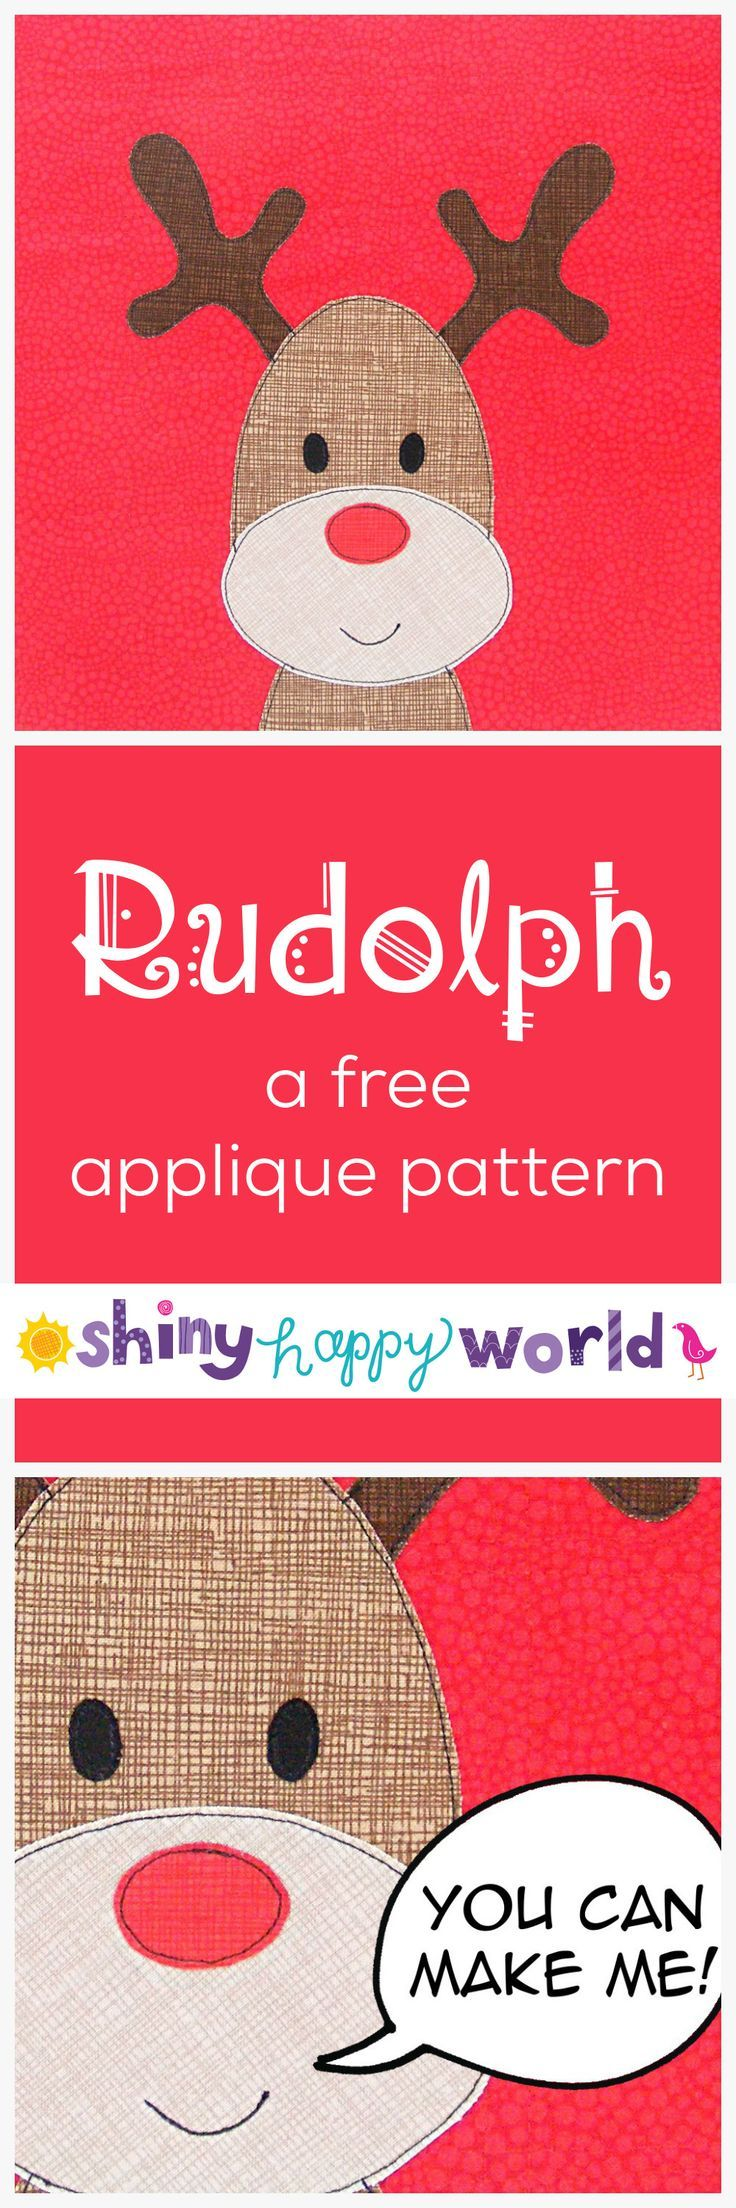 Rudolph the Red-Nosed Reindeer - a free applique pattern